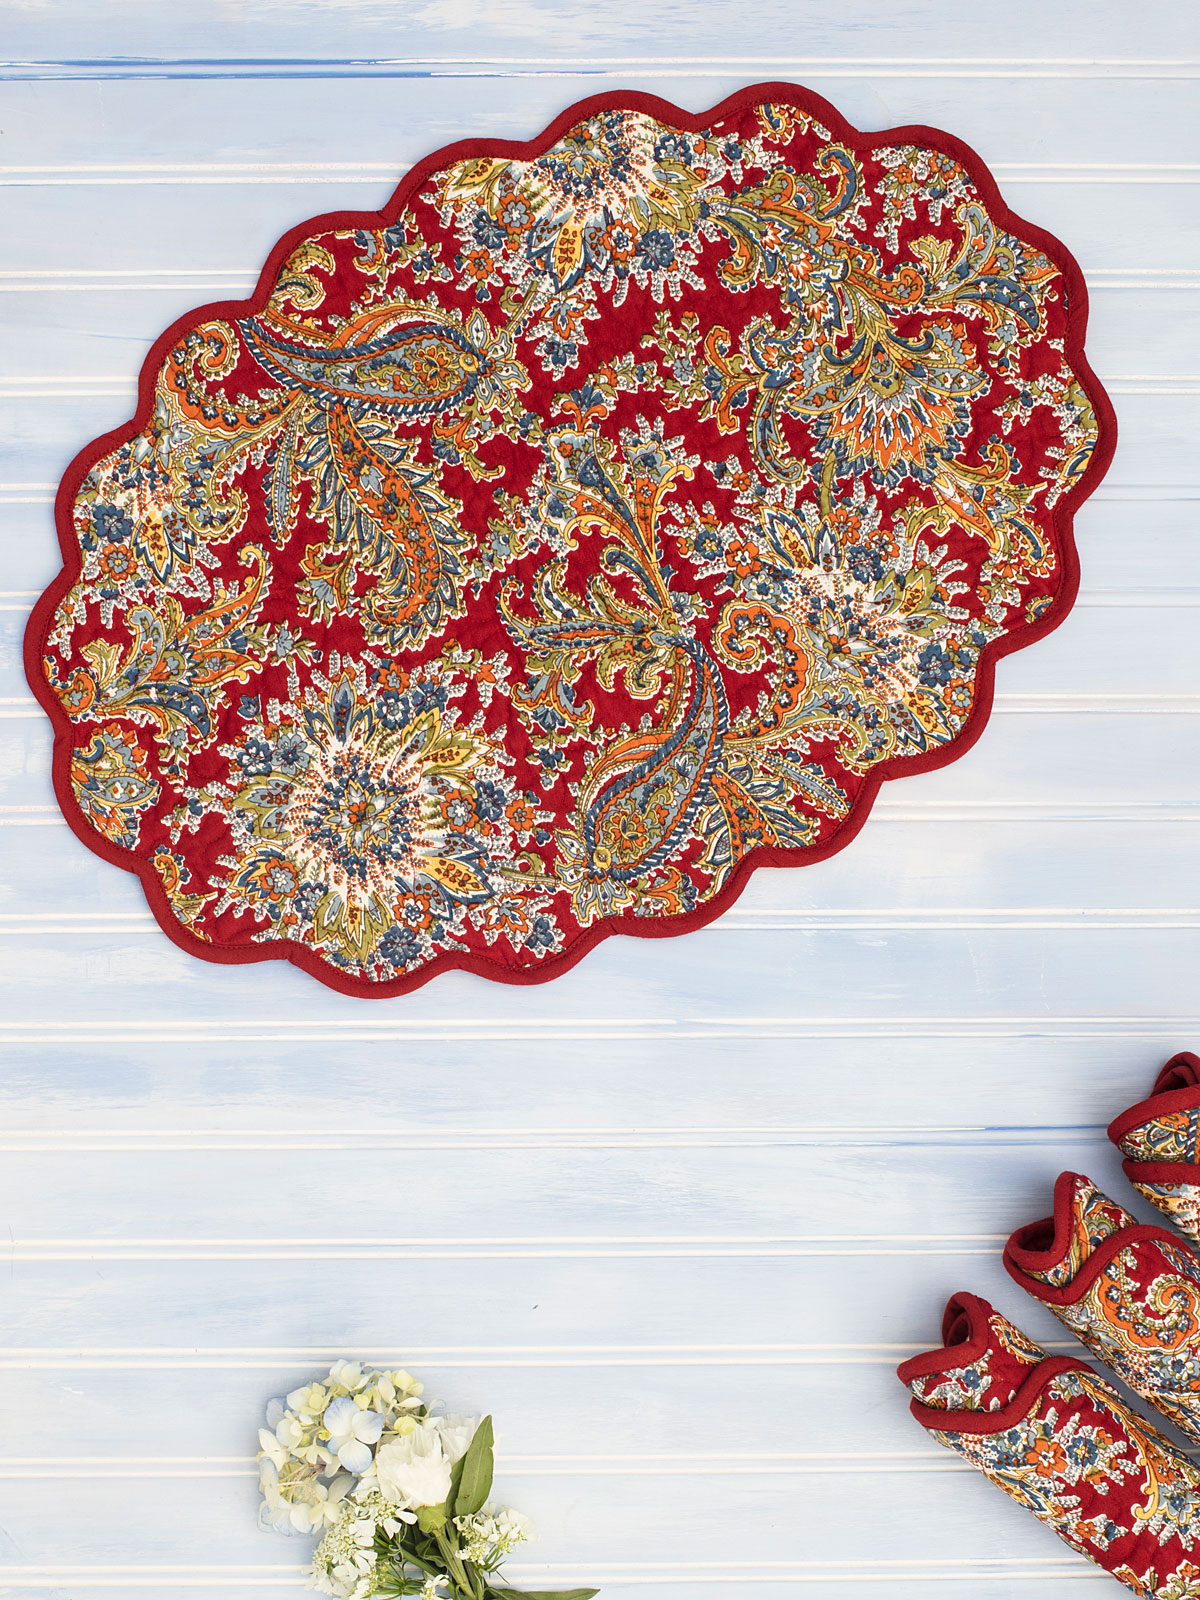 Rhapsody Paisley Quilted Placemat Set of 4